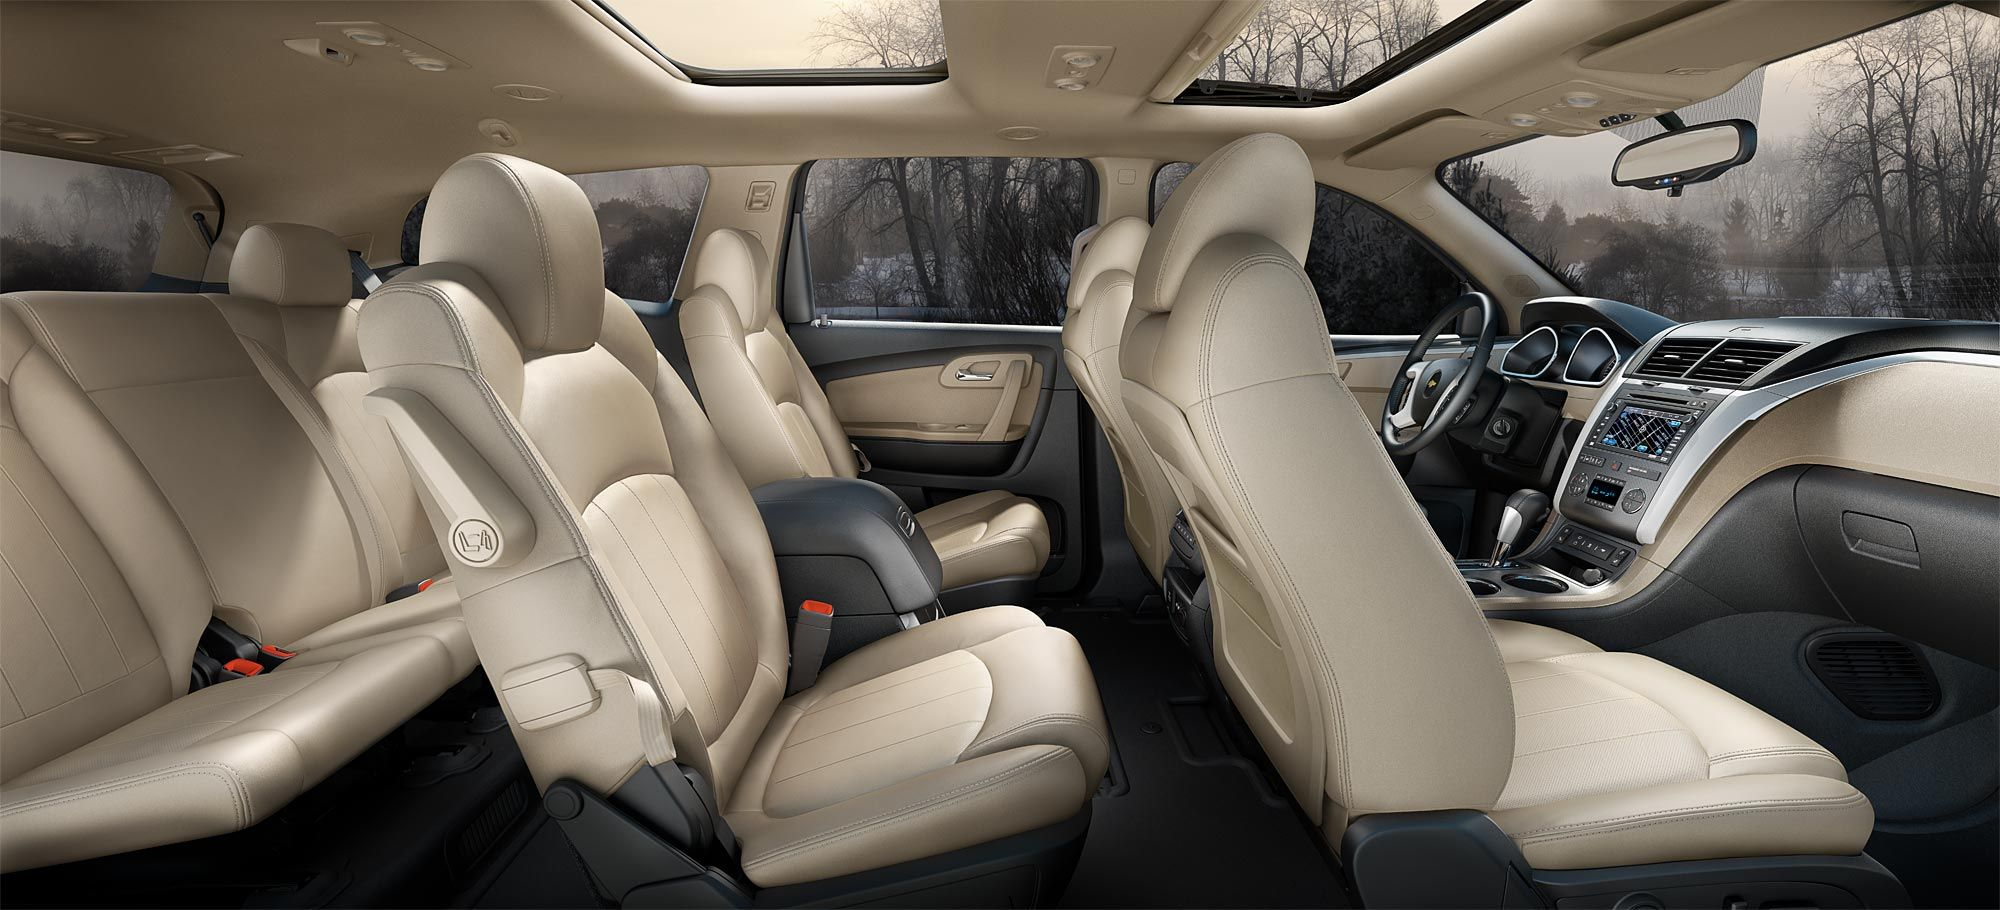 Interior Of A Chevy Traverse...my Next Family Car W/ Entertainment System!